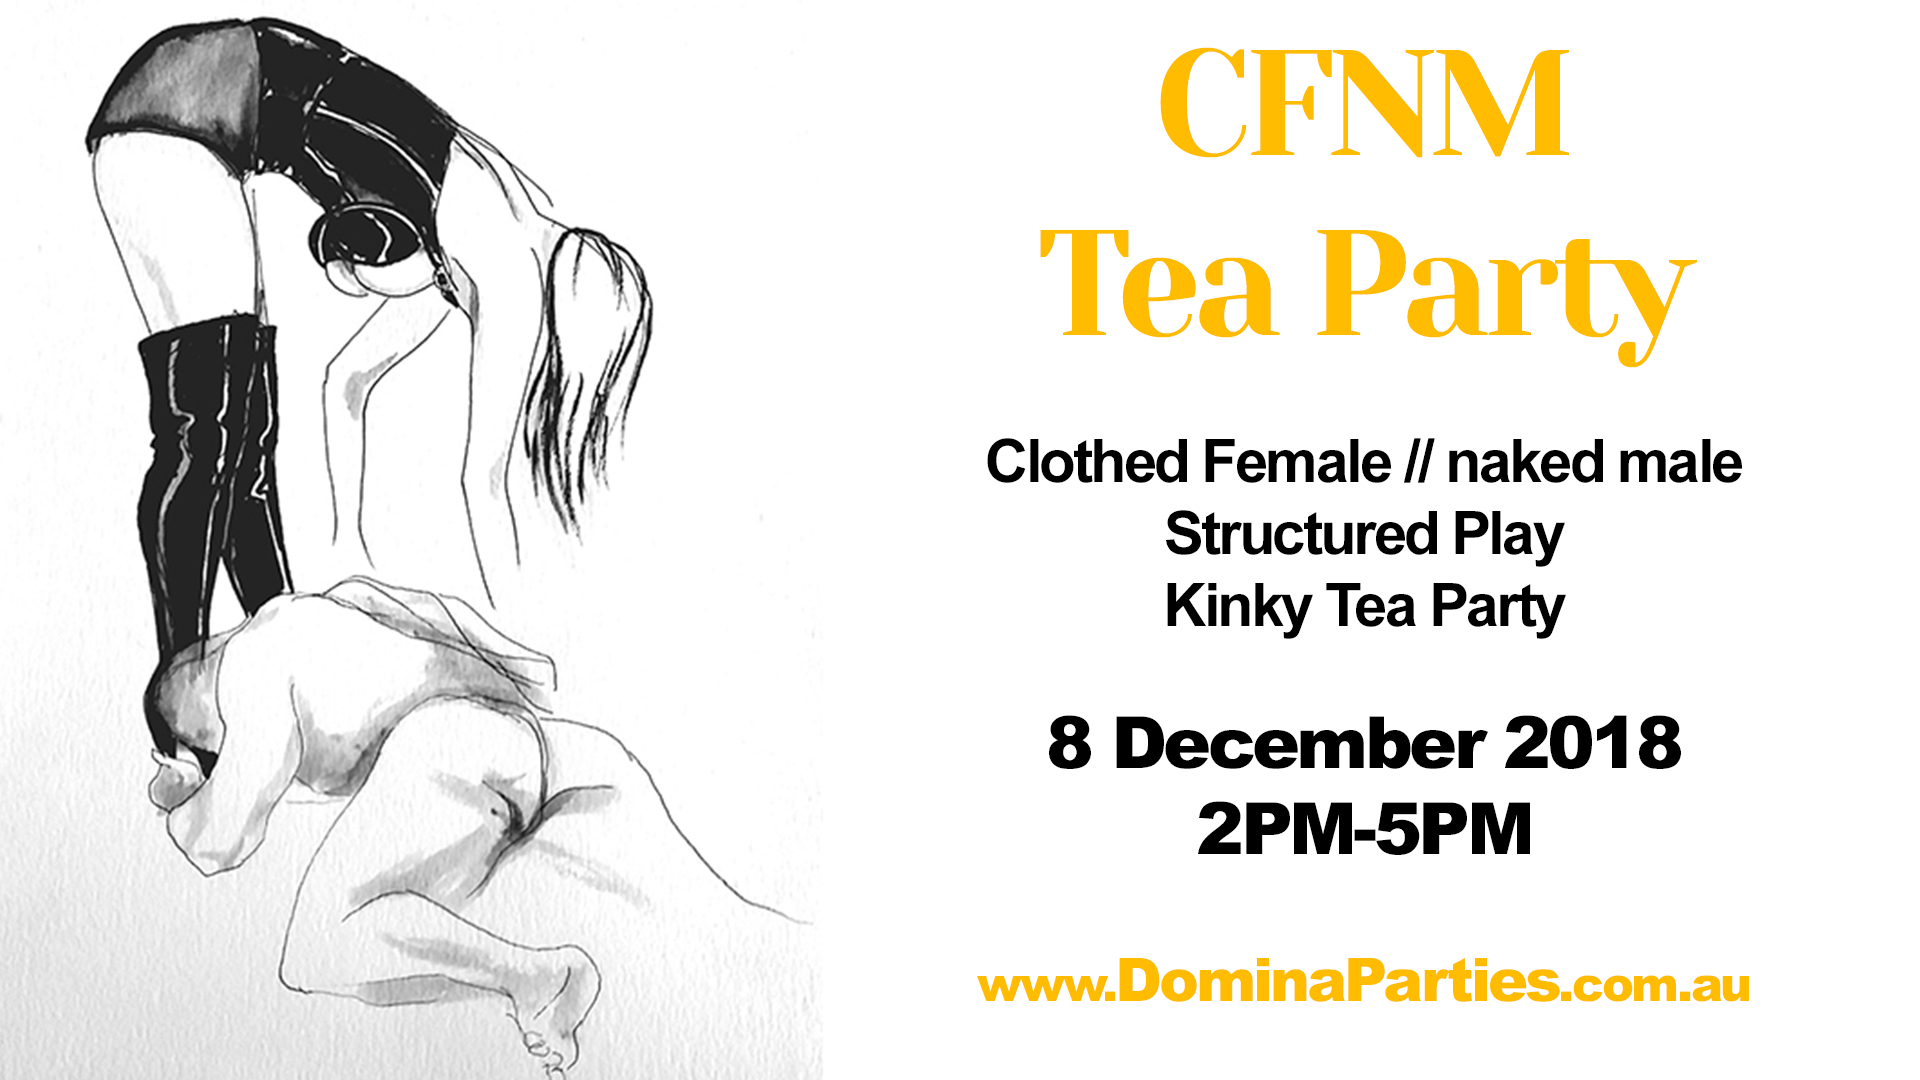 Sydney CFNM Afternoon Tea Party 18 March 2017